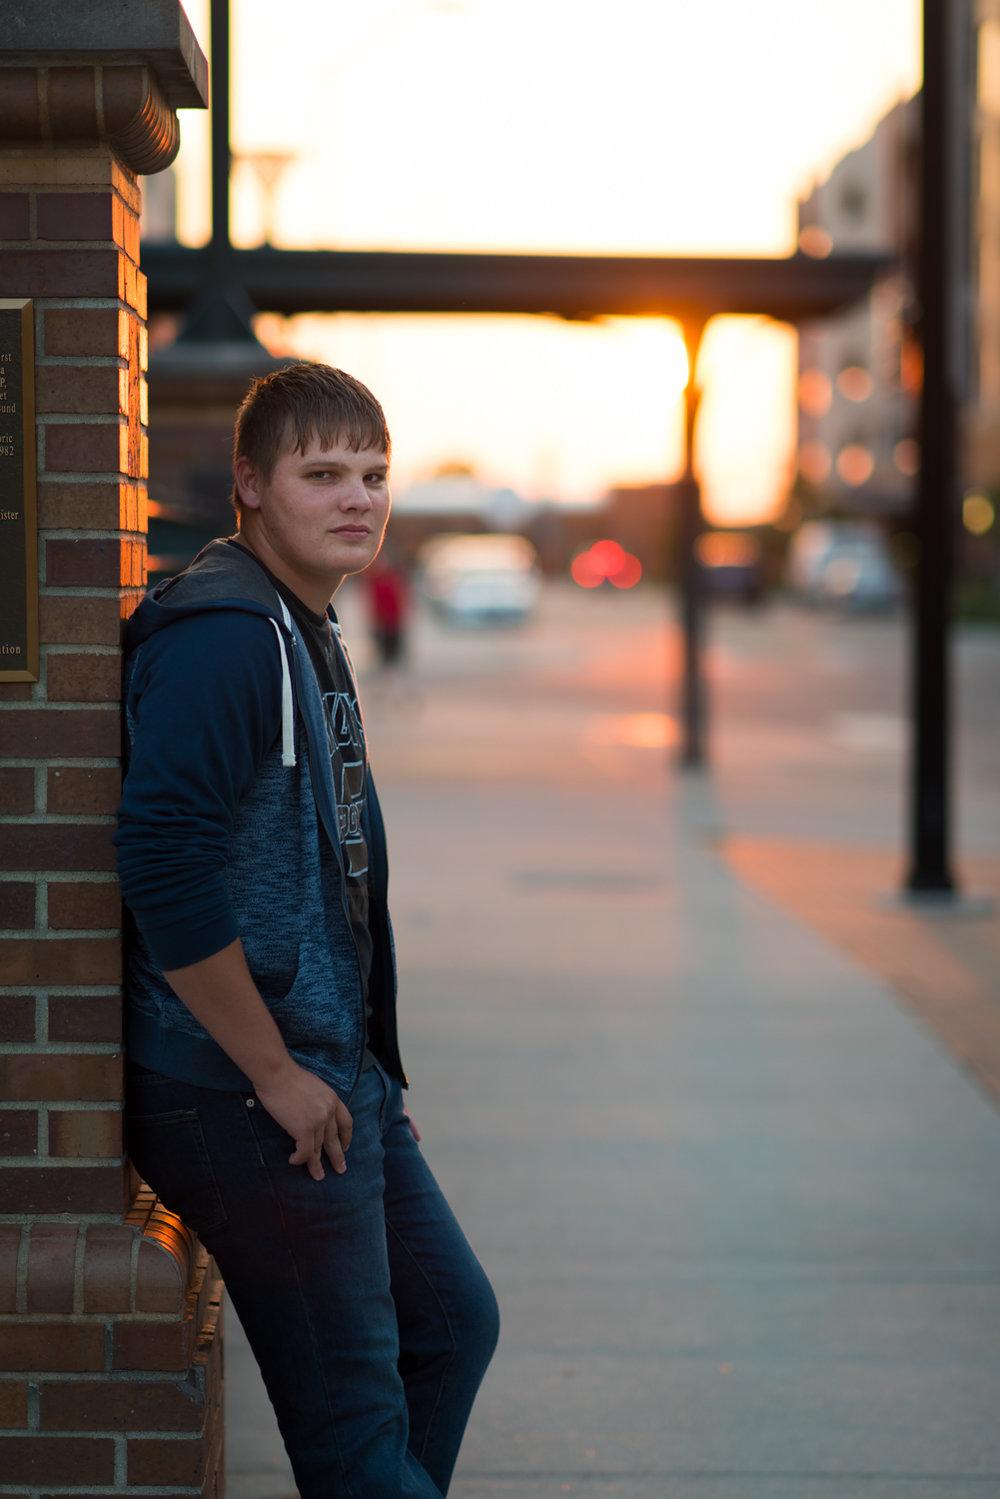 Brendan Lincoln Nebraska Senior Photos by Misty Prochaska Photography_-6.jpg